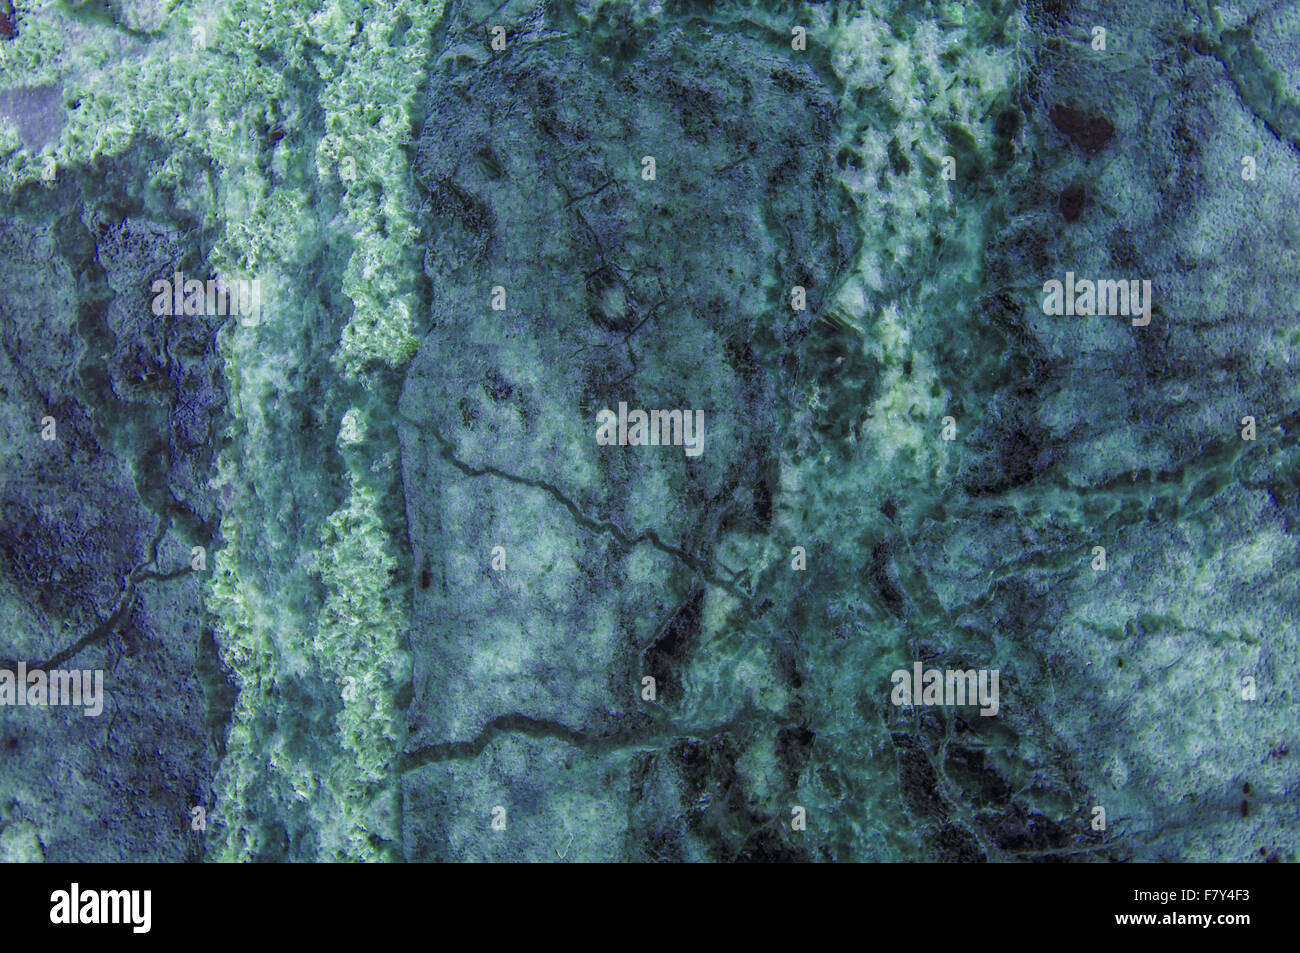 Green Marble Slab : Green light blue marble granite stone slab surface stock